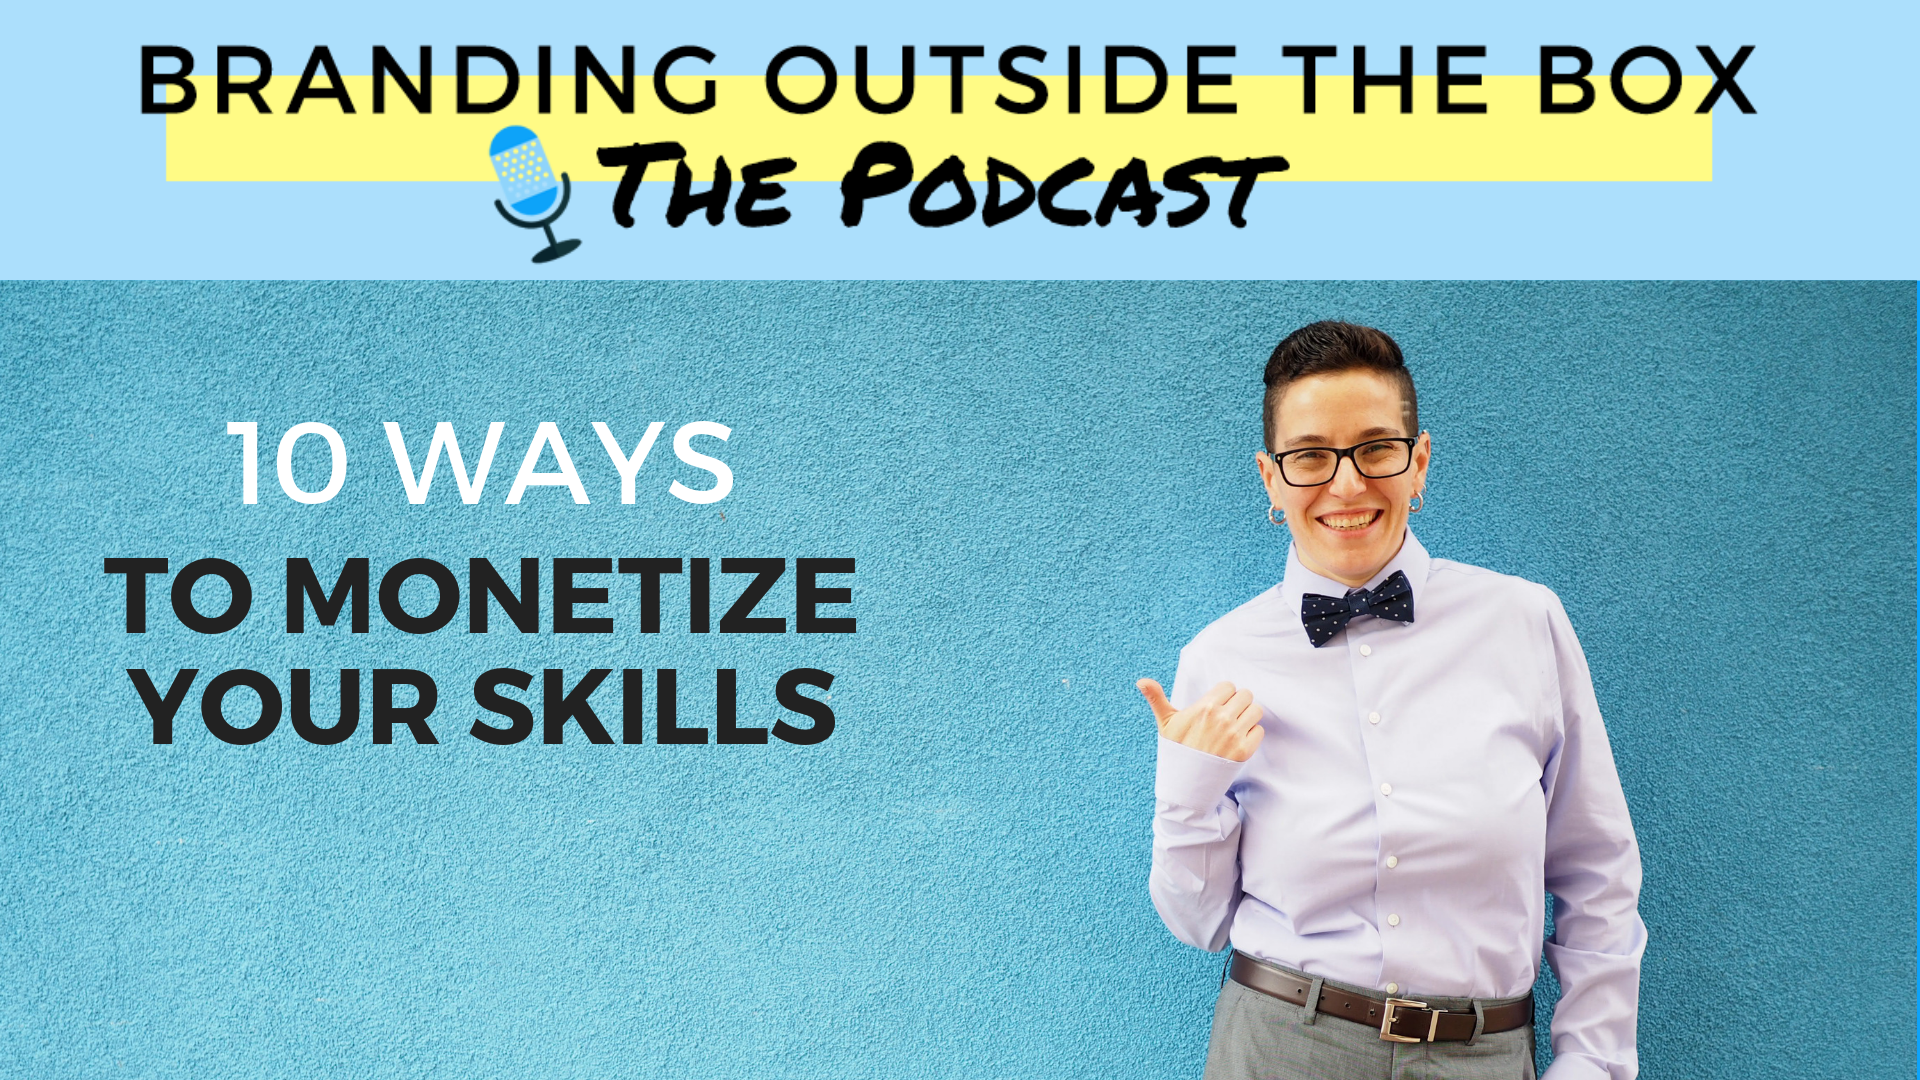 10 Ways to Monetize Your Skills